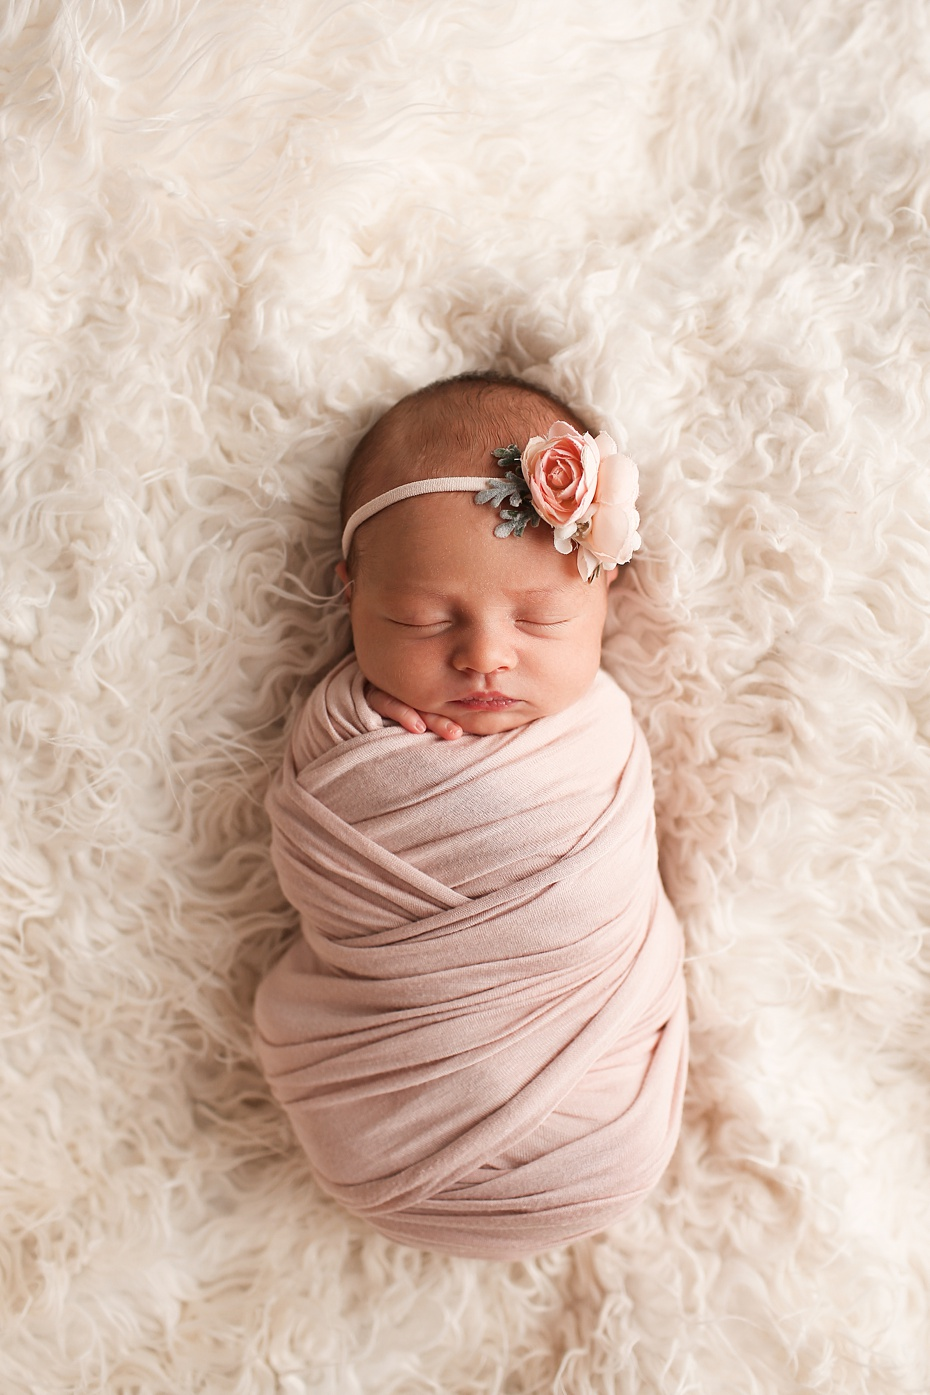 truly_you_photography_enid__photographer_family_newborn-15_web.jpg